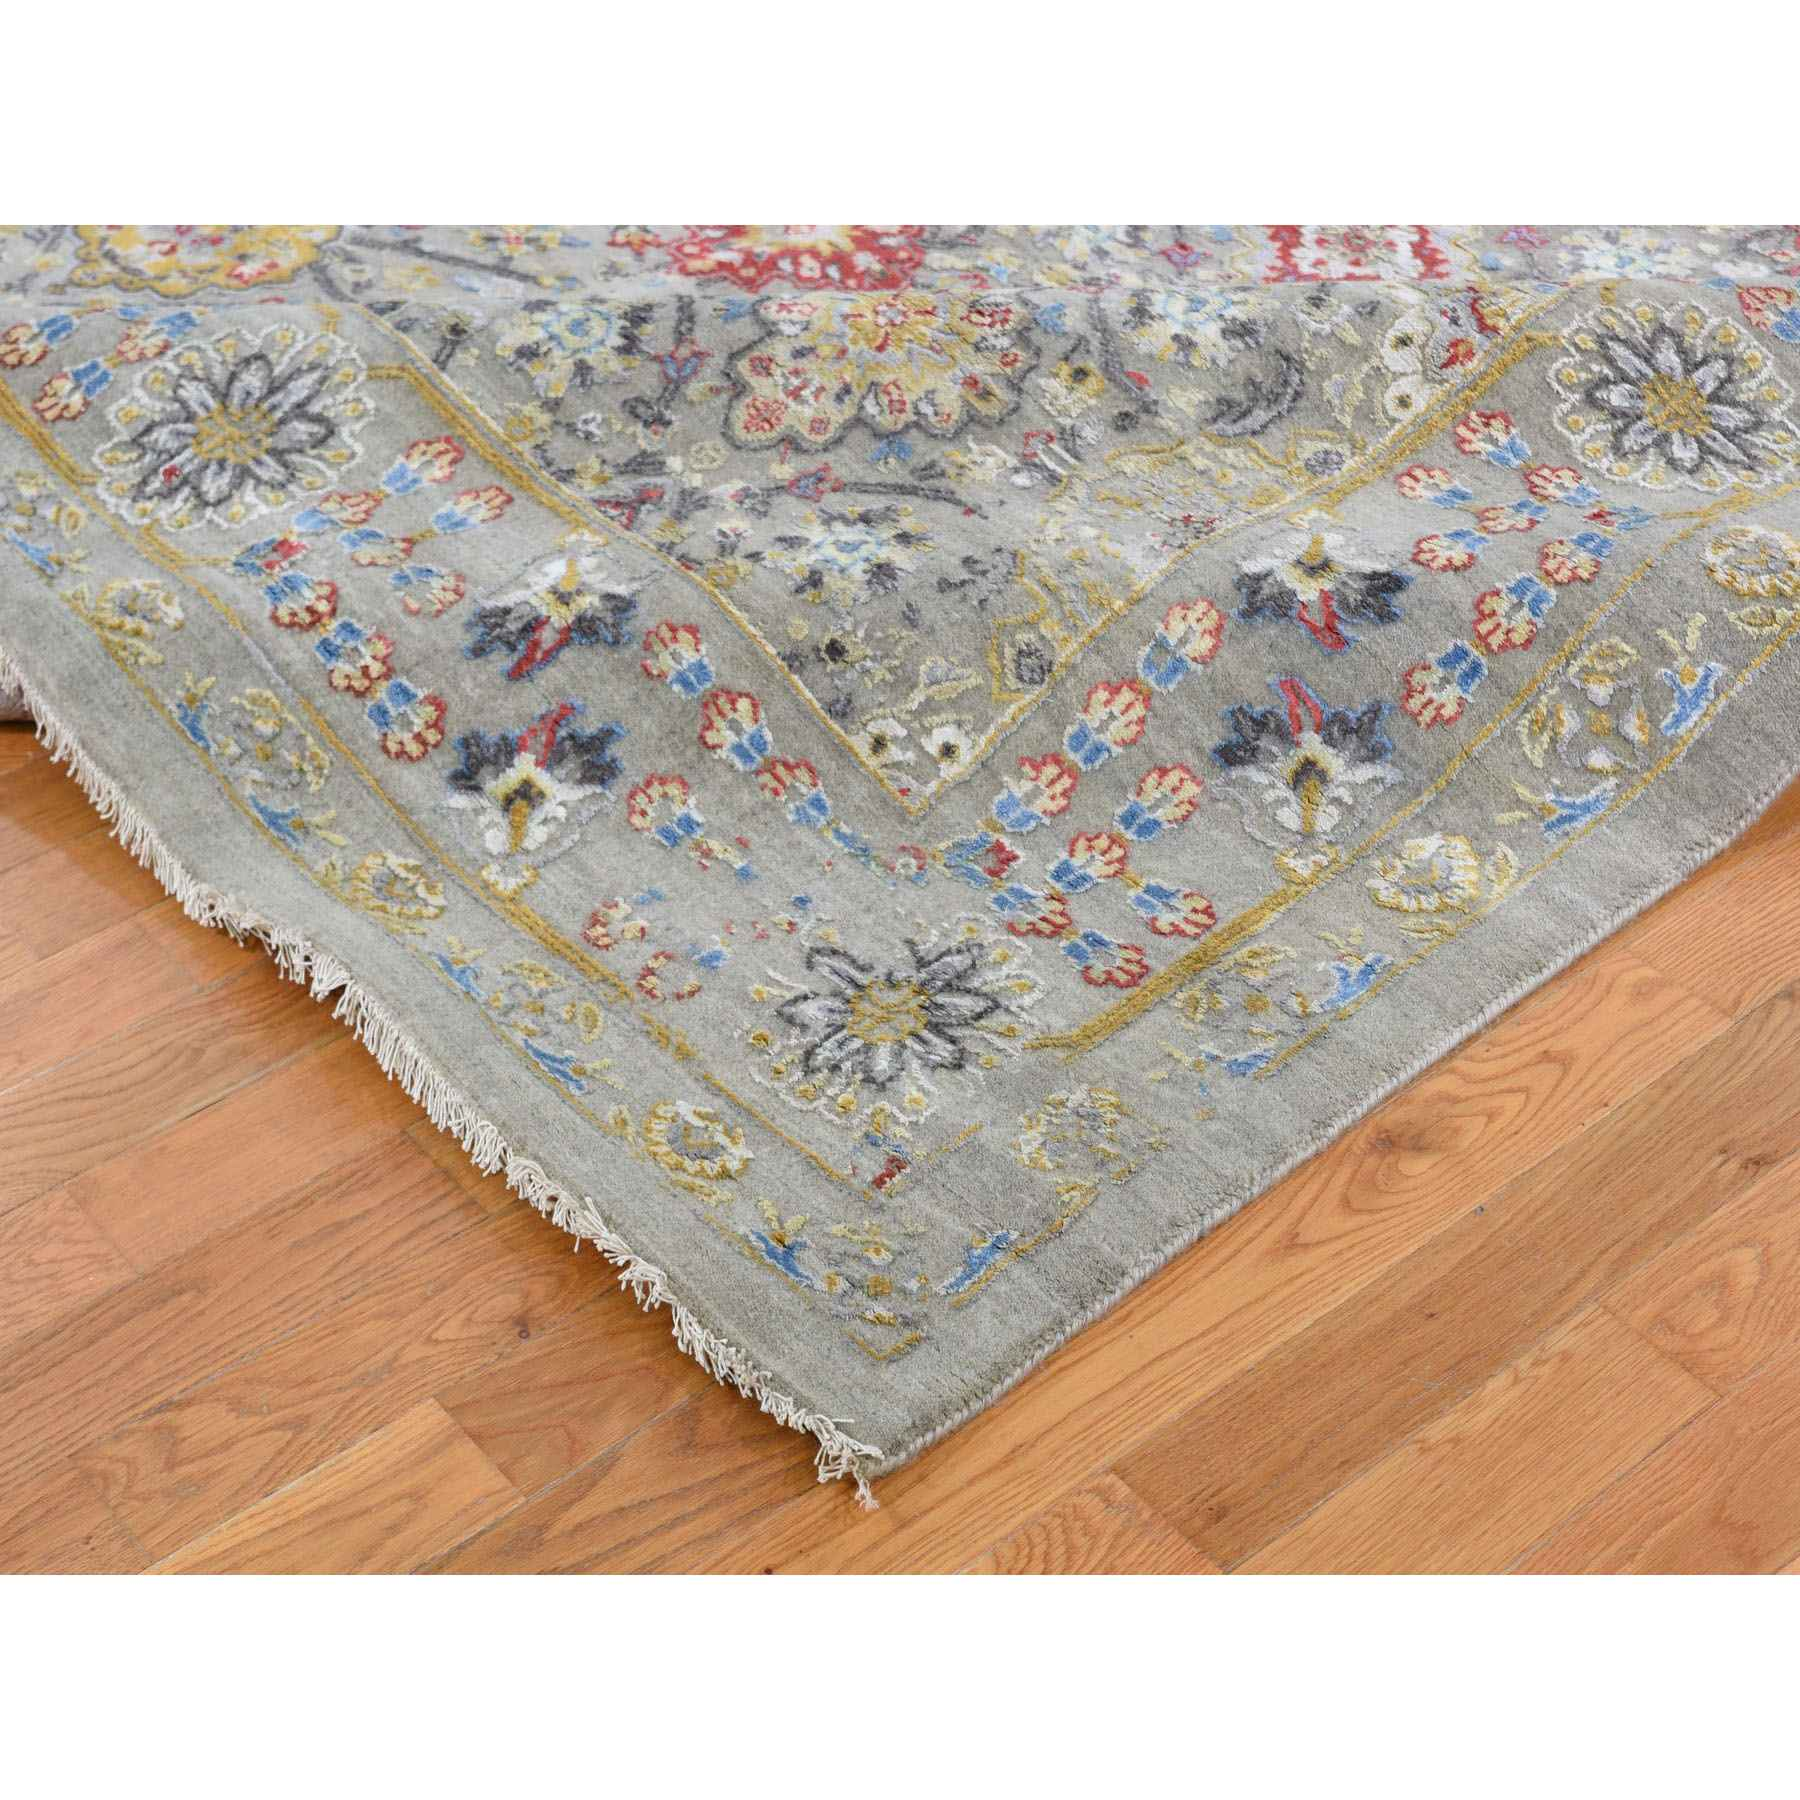 Transitional-Hand-Knotted-Rug-239680